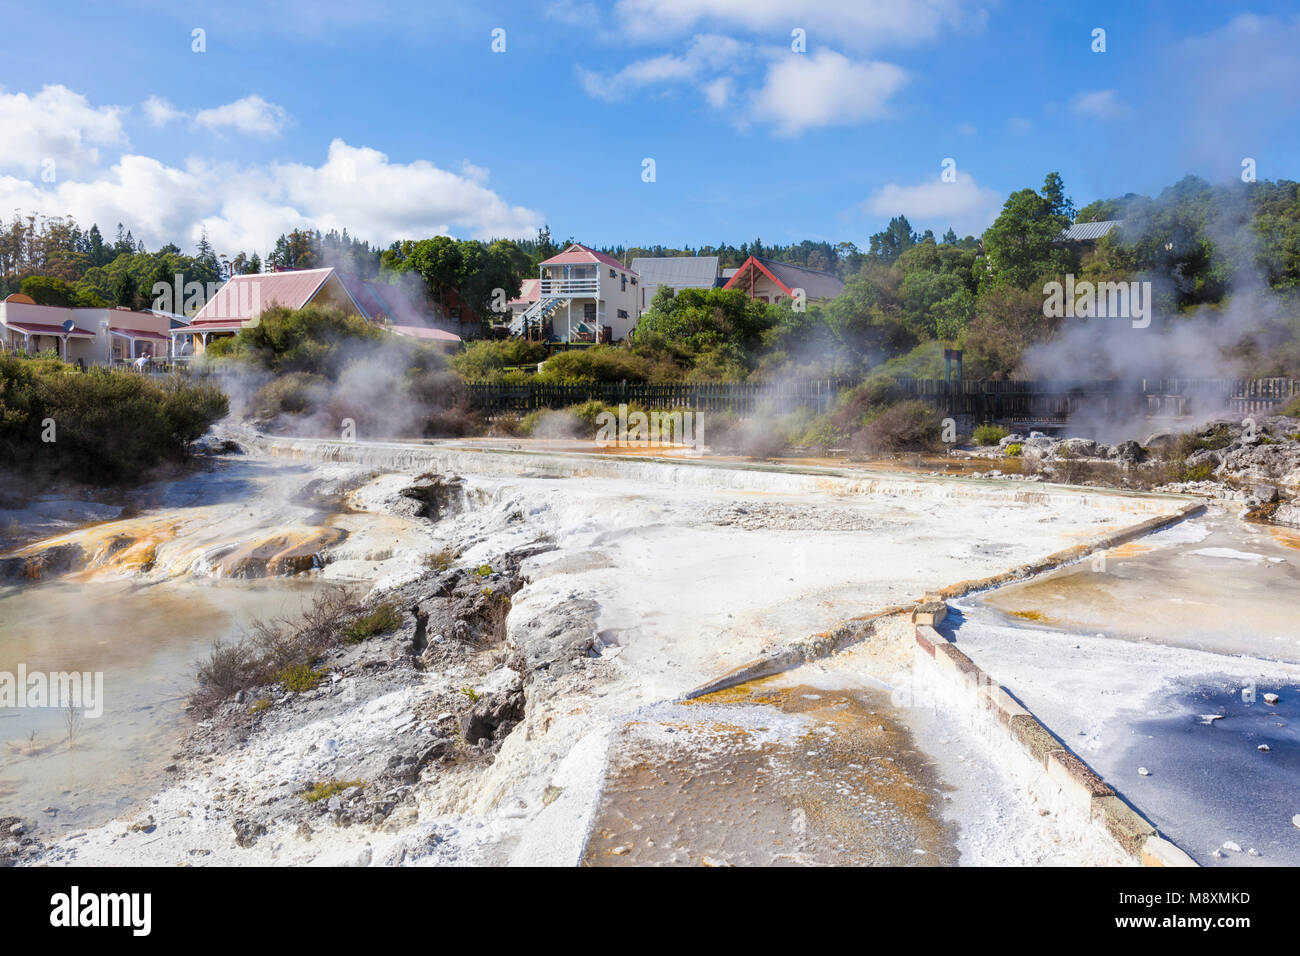 new zealand rotorua new zealand whakarewarewa rotorua terraces with mineral deposit run off from the parekohuru - Stock Image